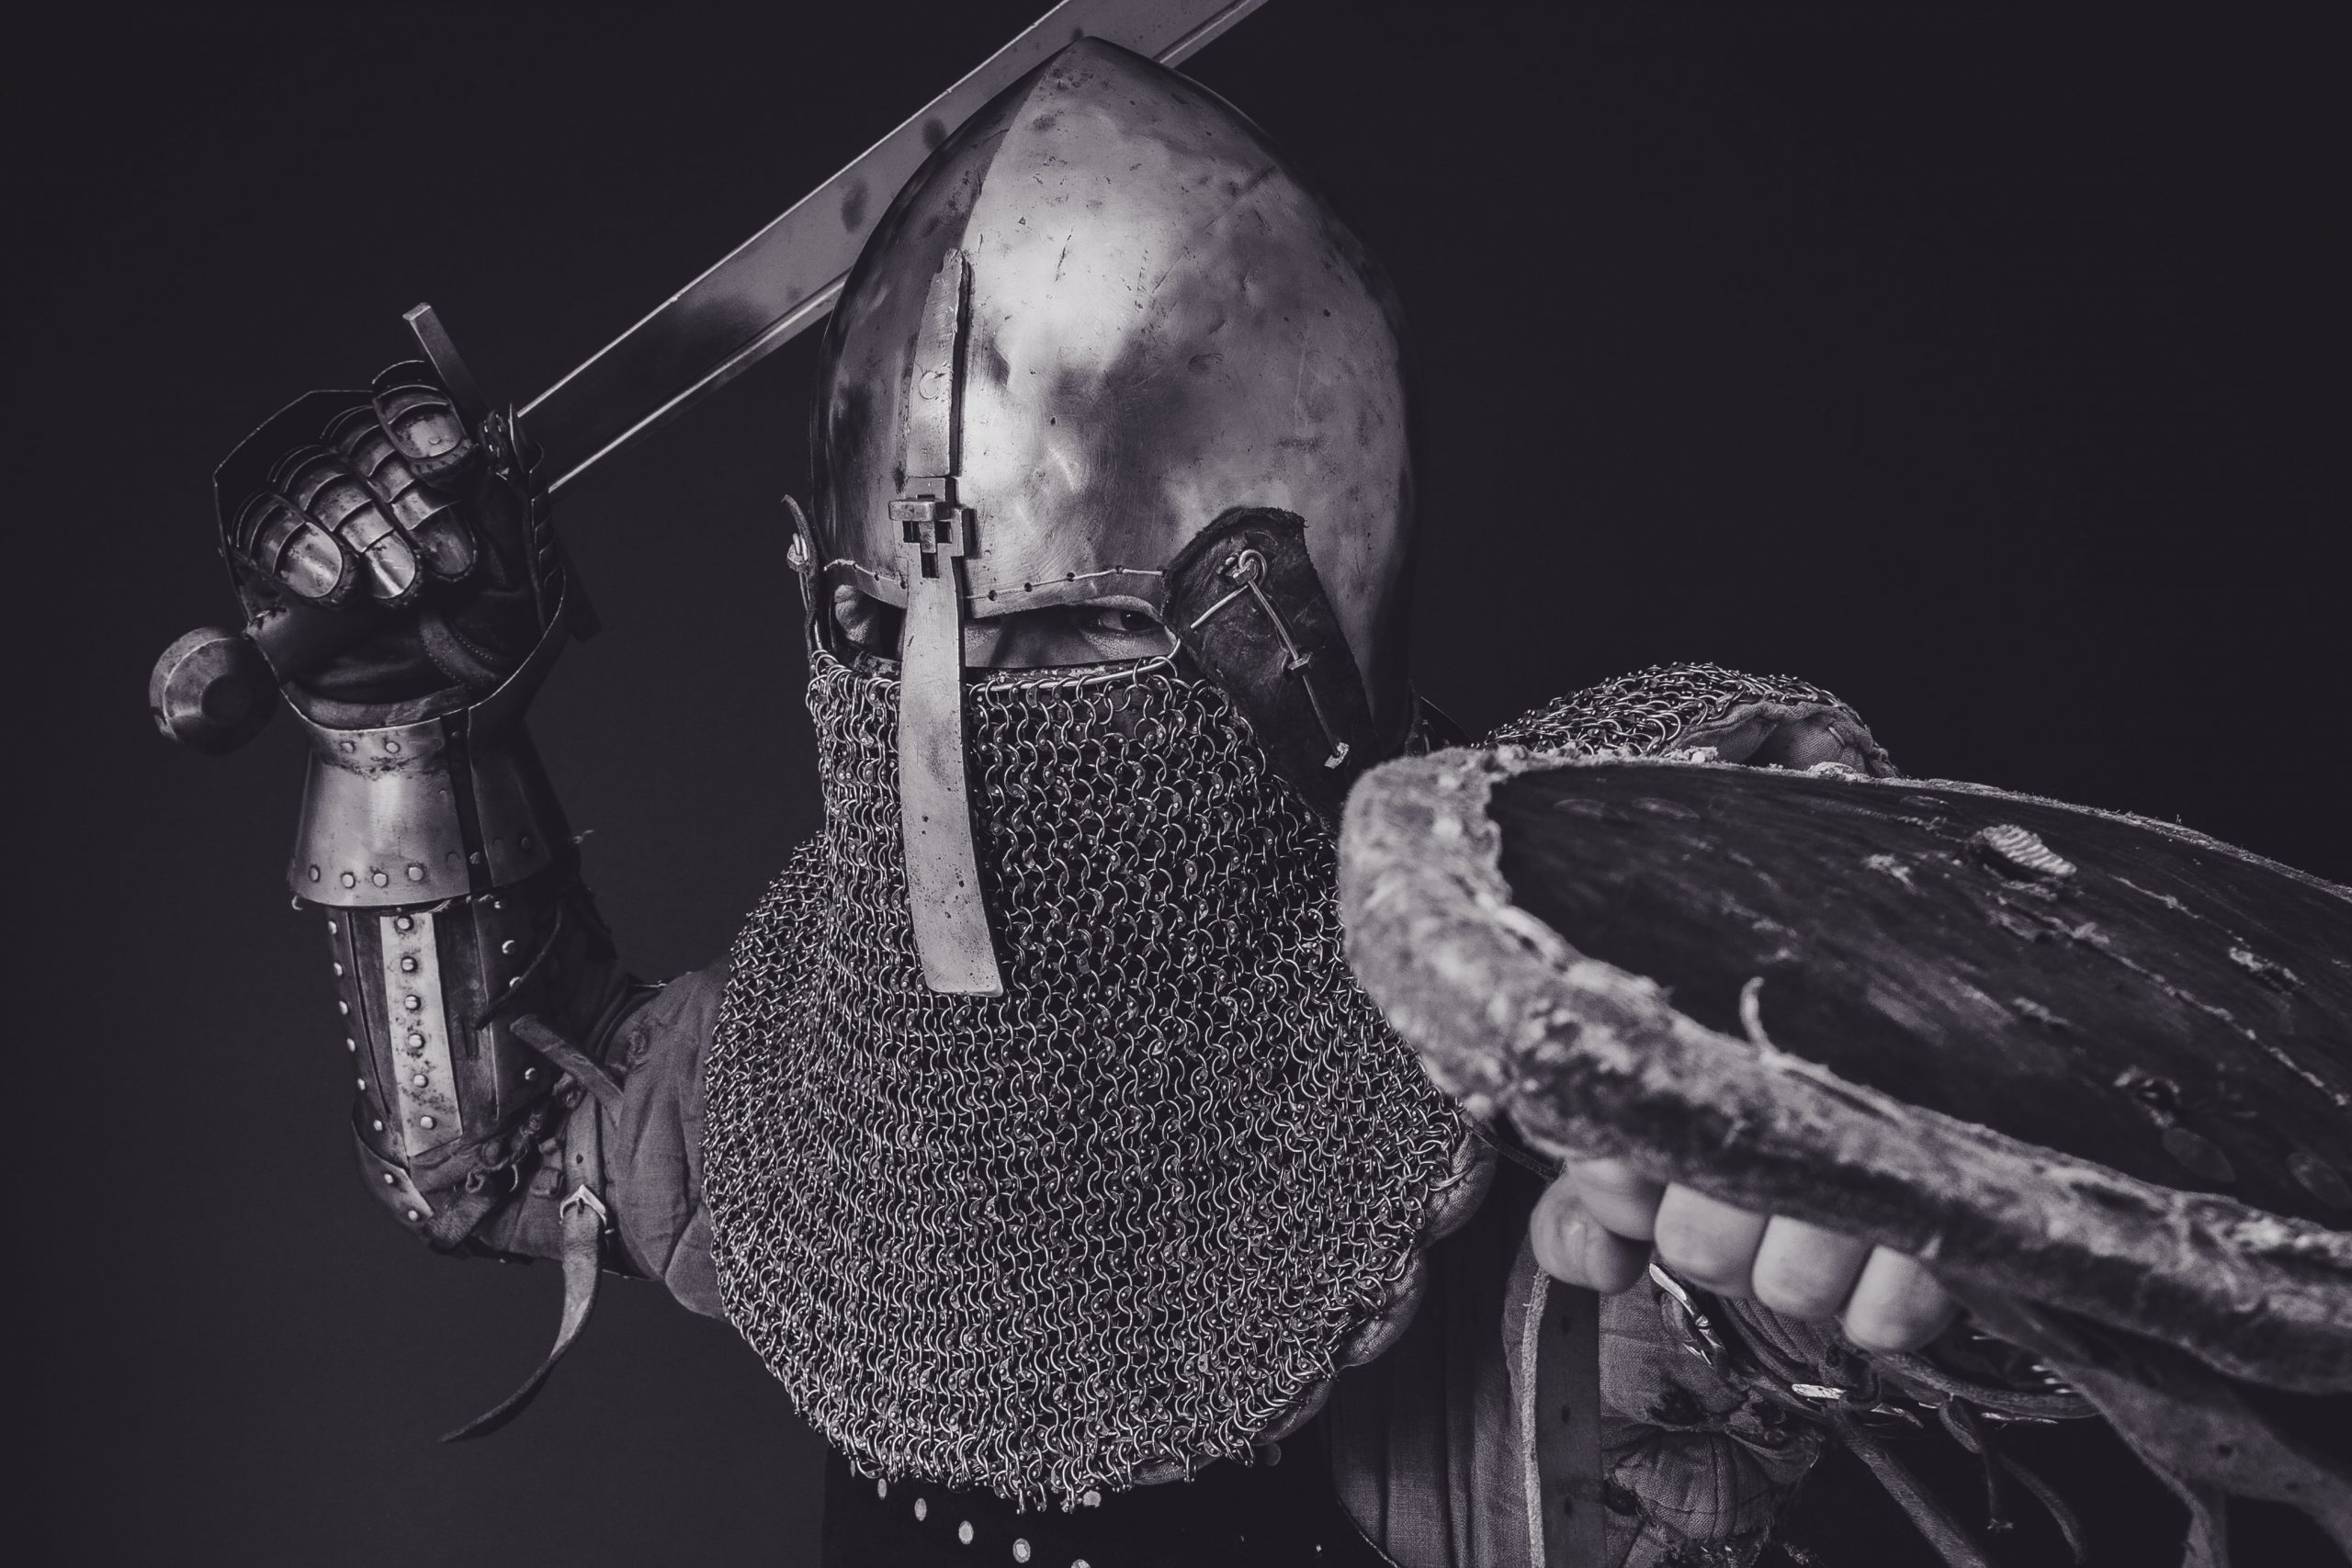 Man in armor stands poised with sword and shield